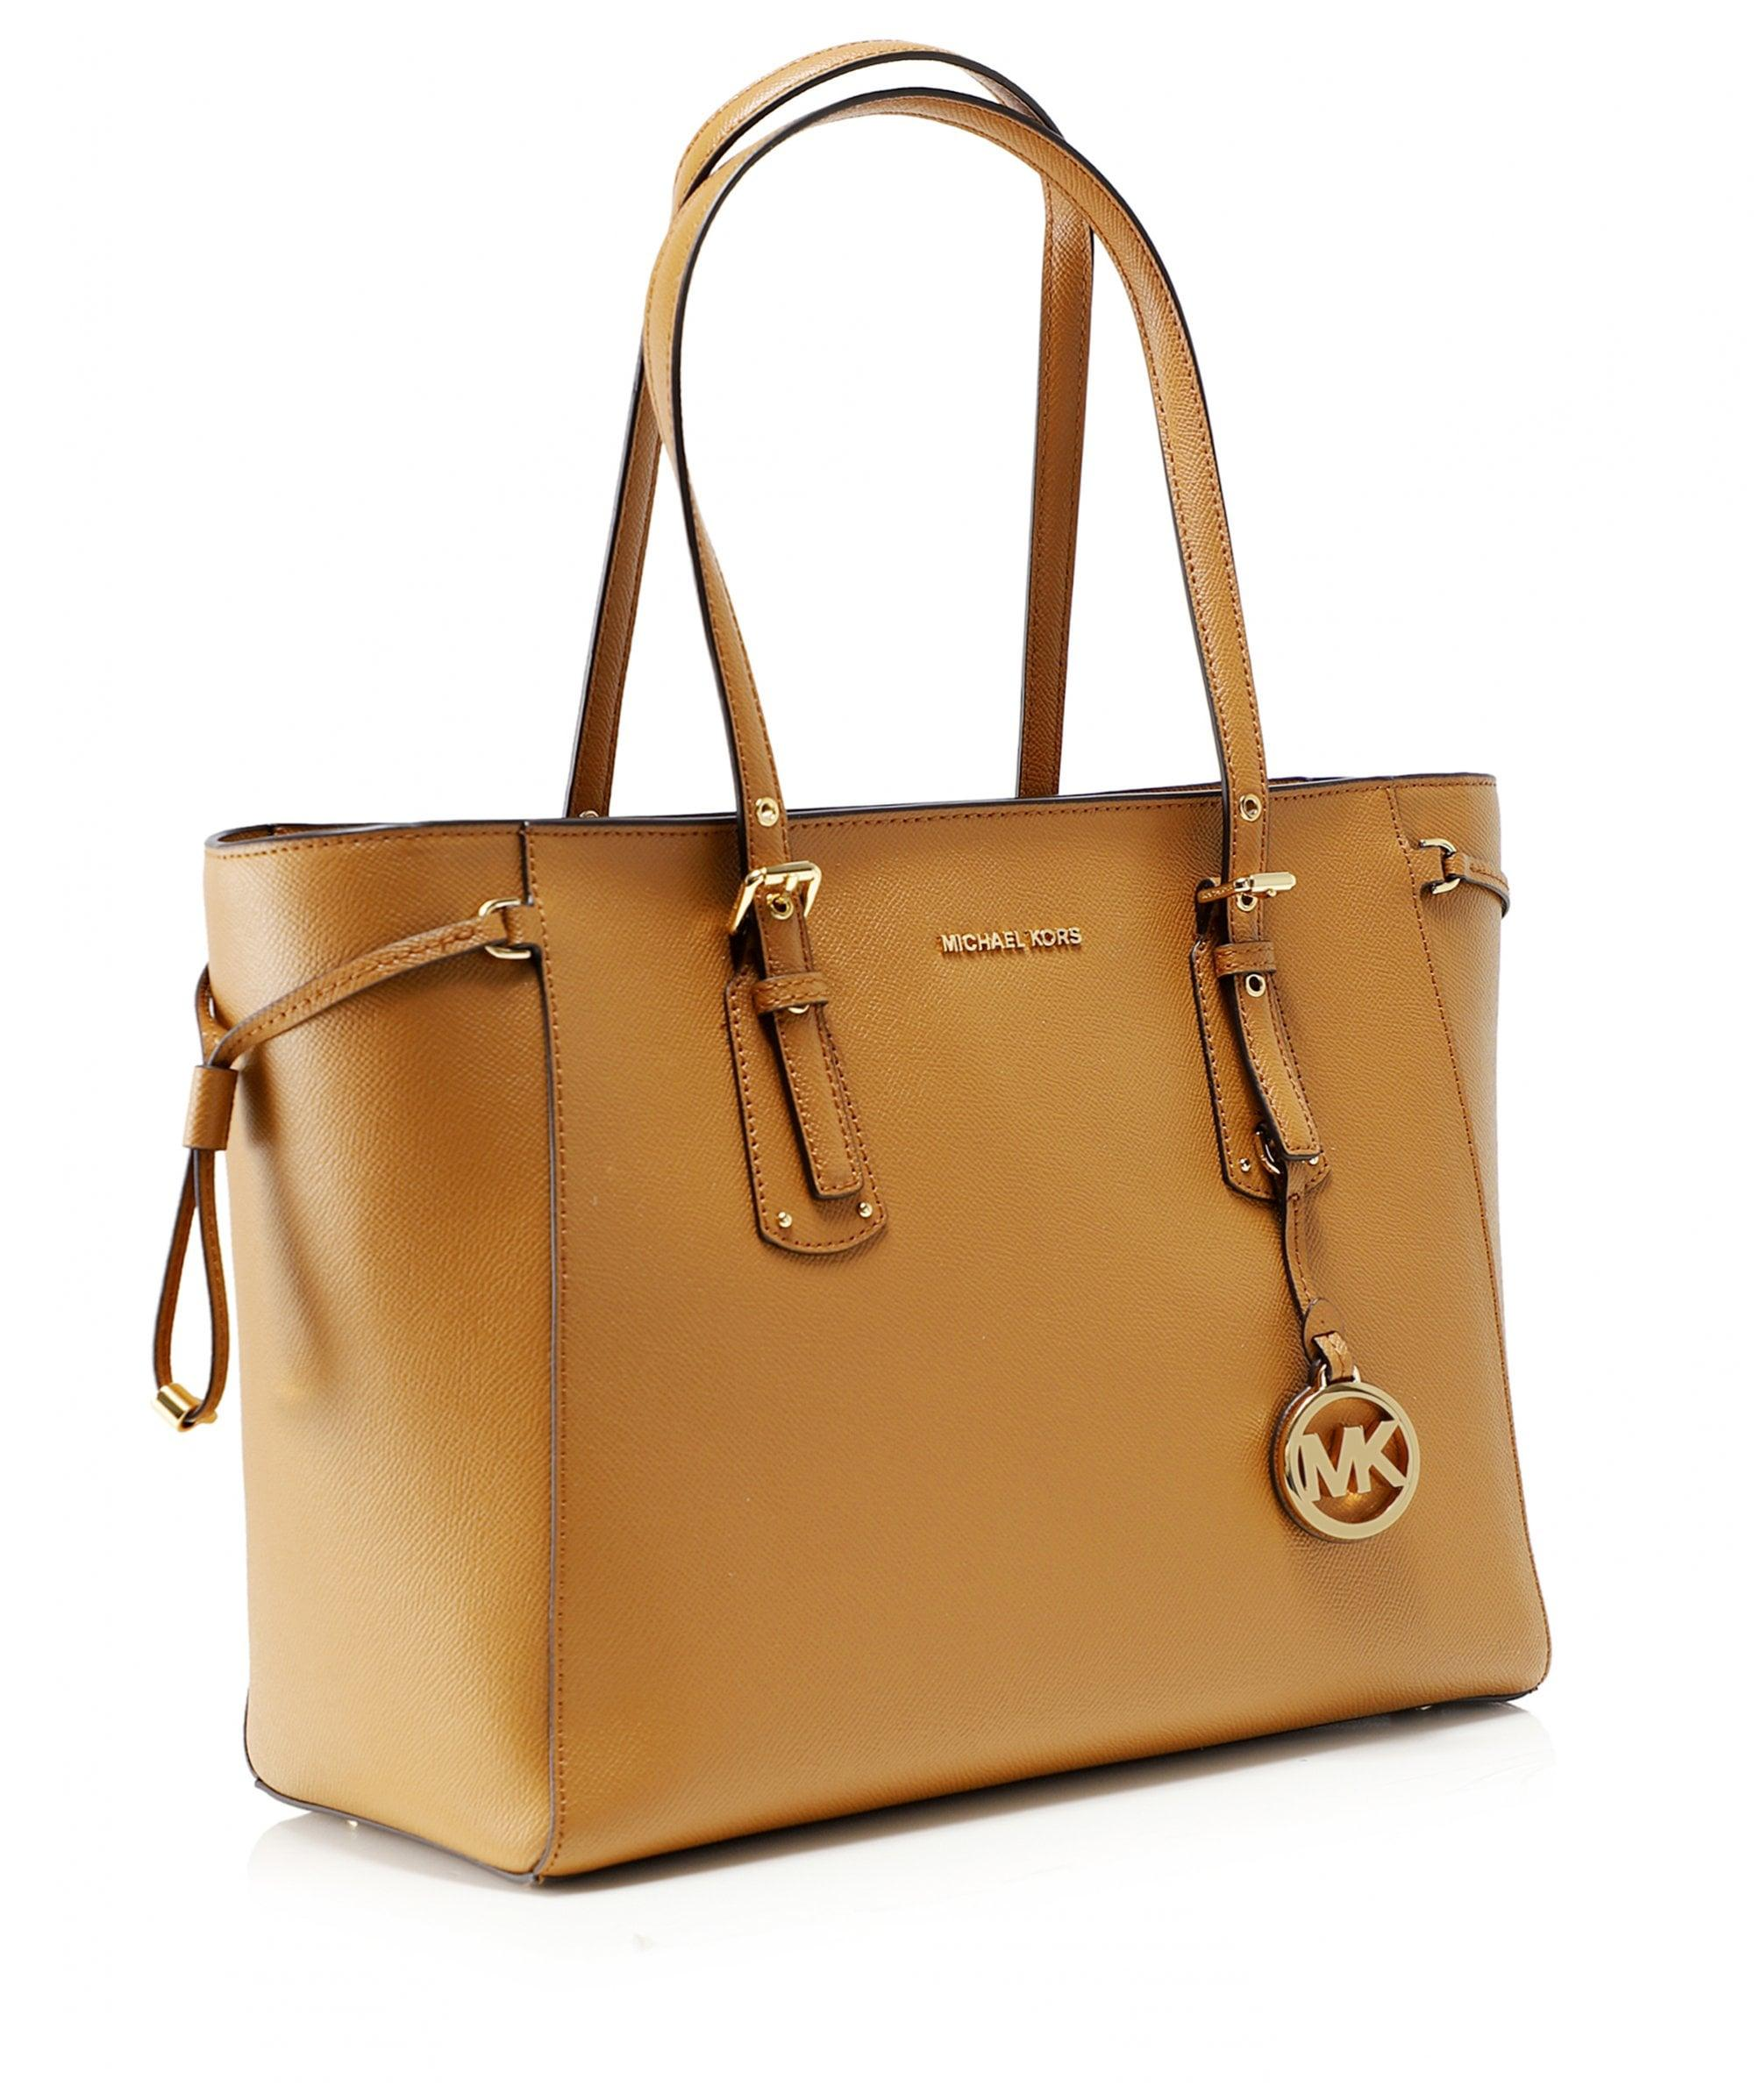 4f18cdc0f723 Lyst - MICHAEL Michael Kors Leather Voyager Medium Tote Bag in Brown